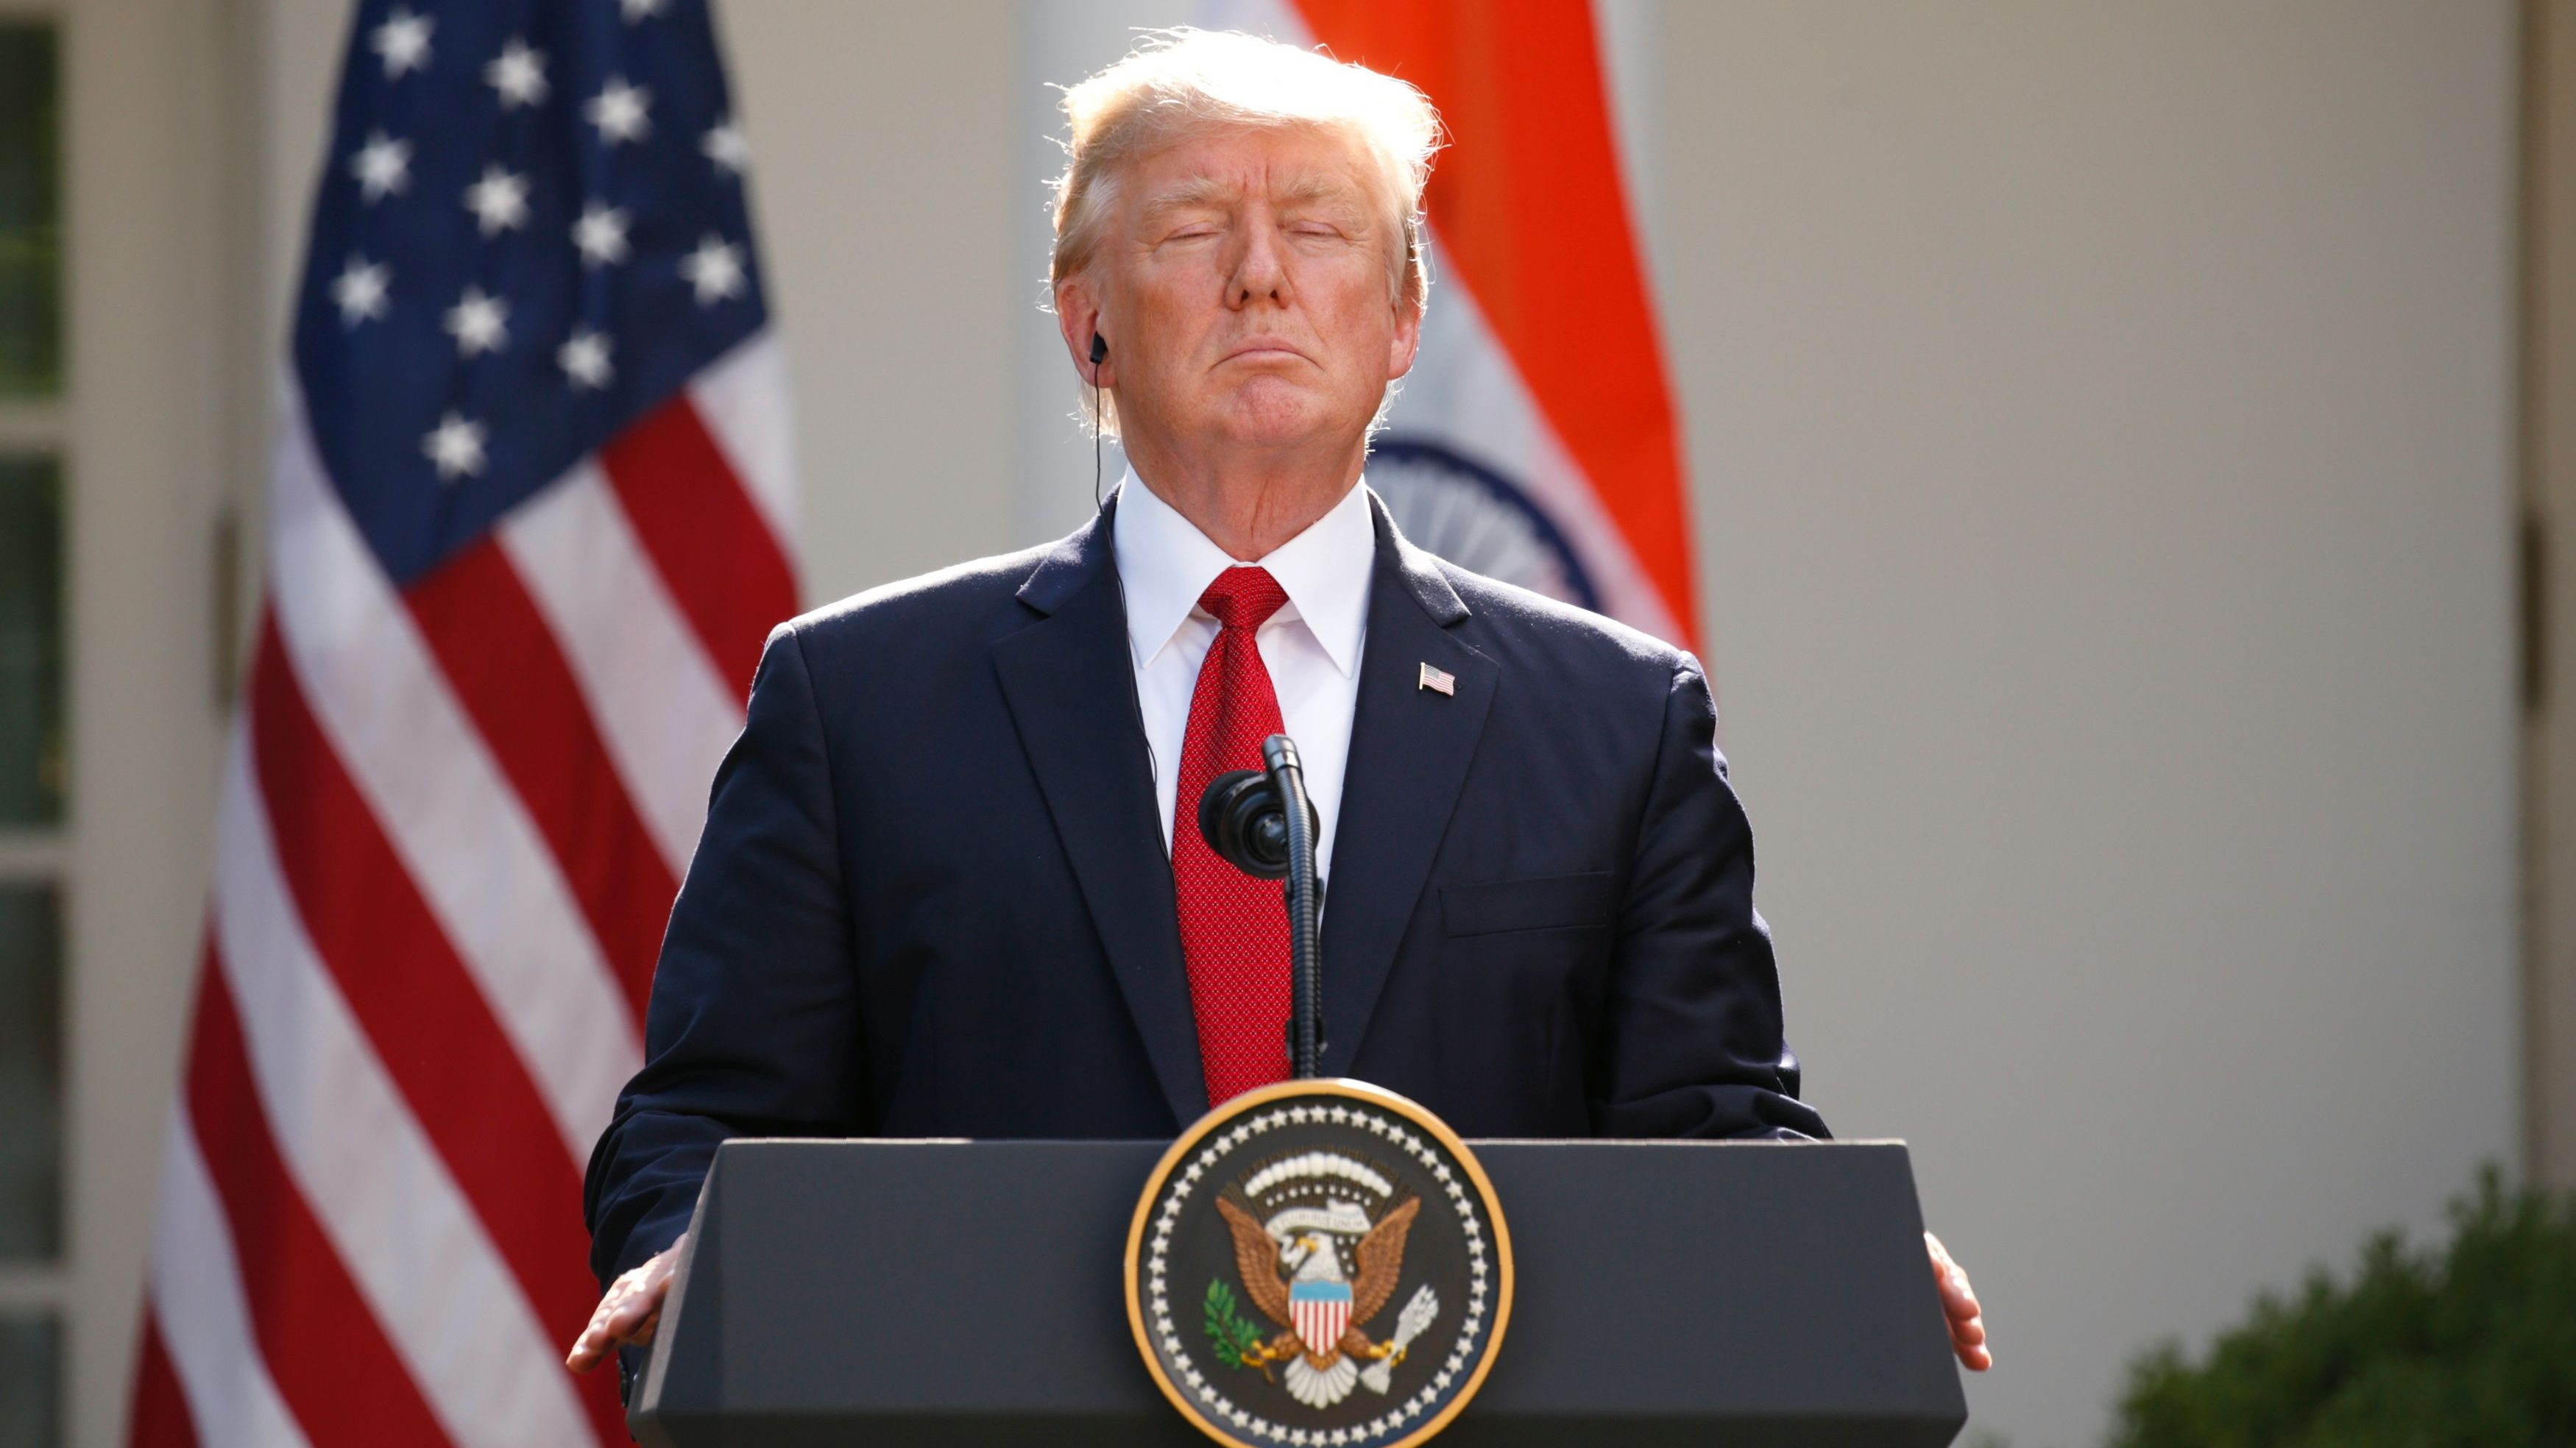 US President Trump pauses during joint news conference with Indian Prime Minister Modi in the Rose Garden of the White House in Washington